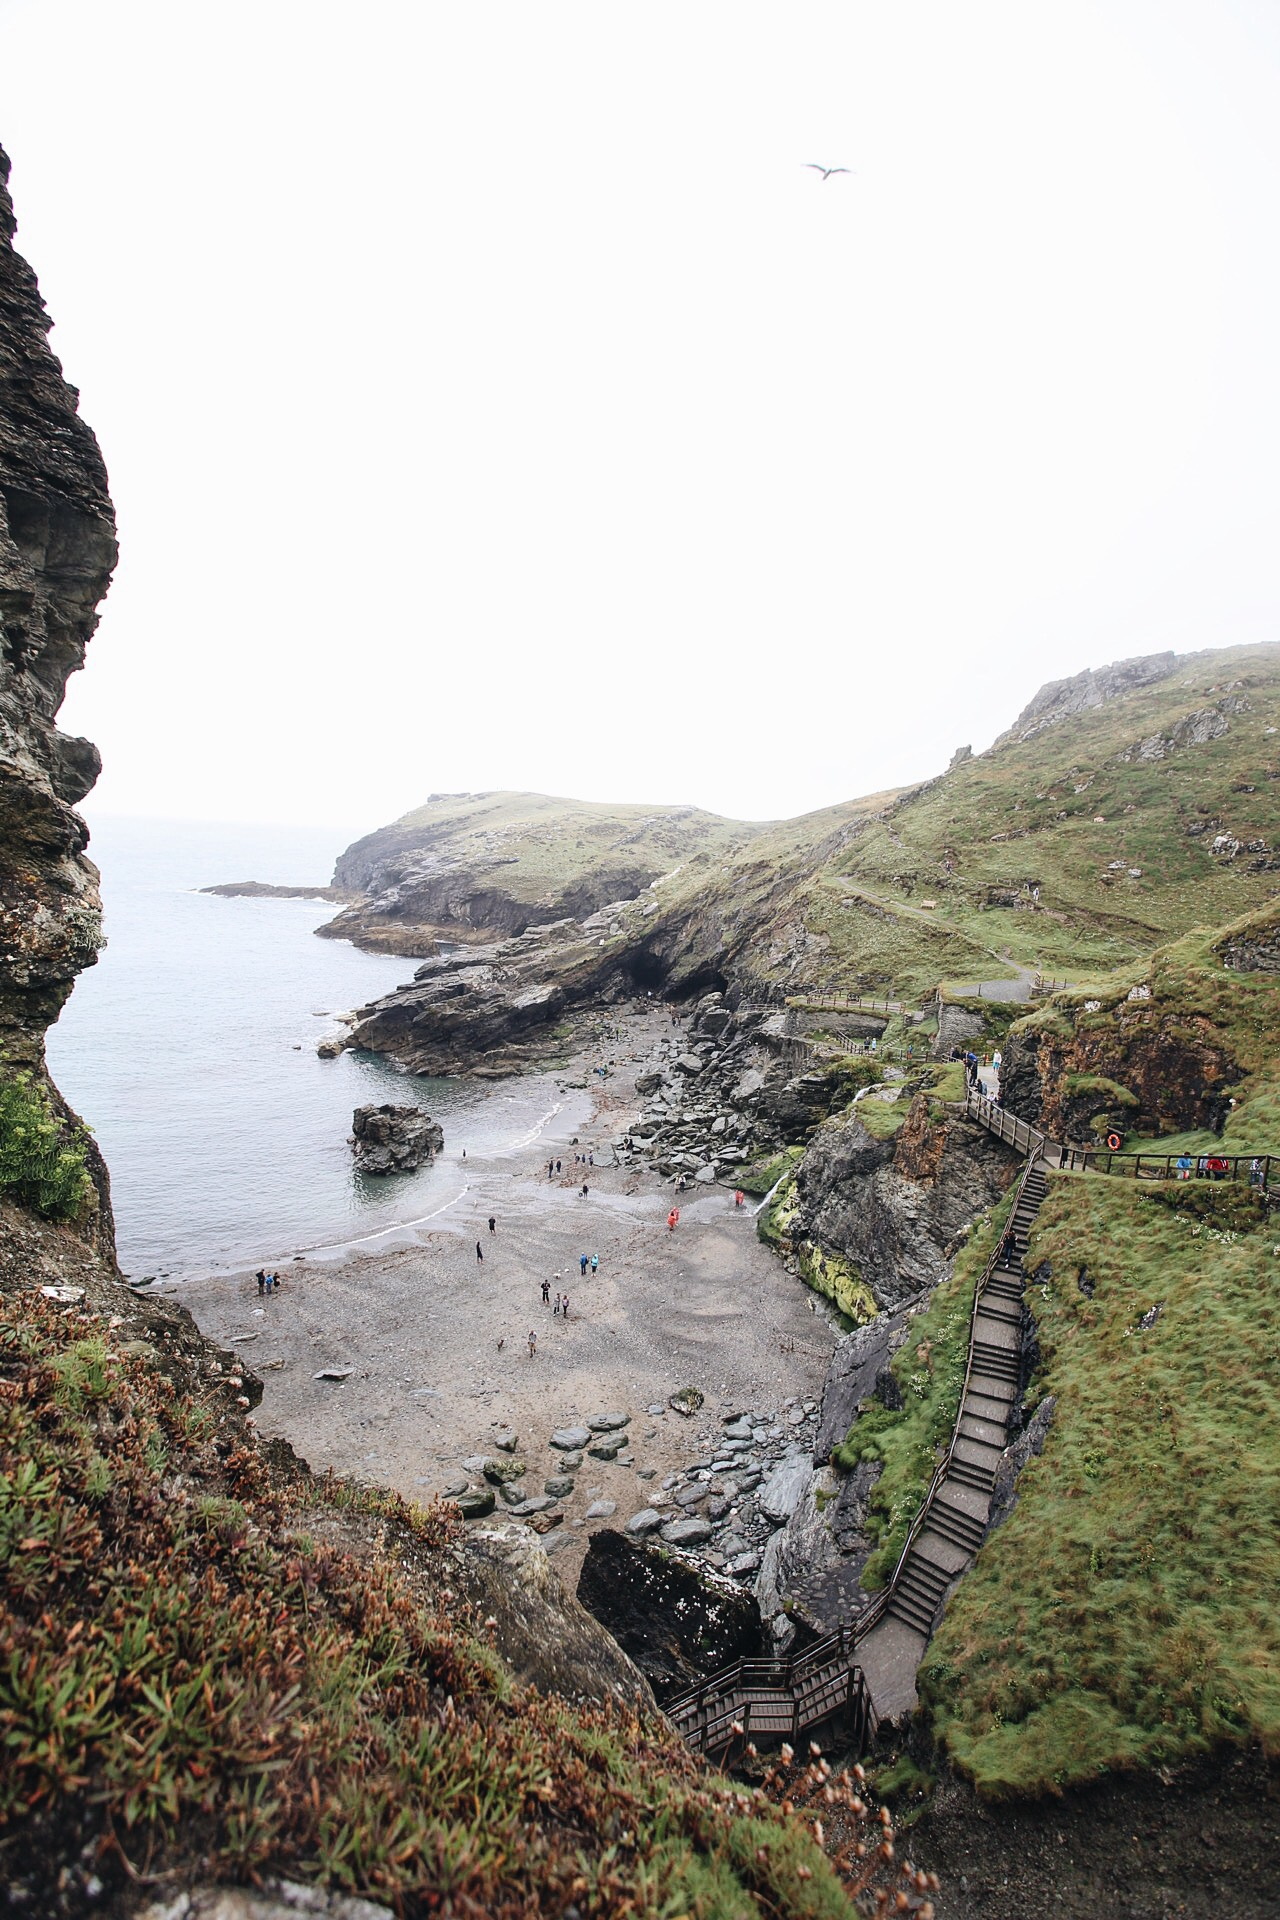 Tintagel castle and post office